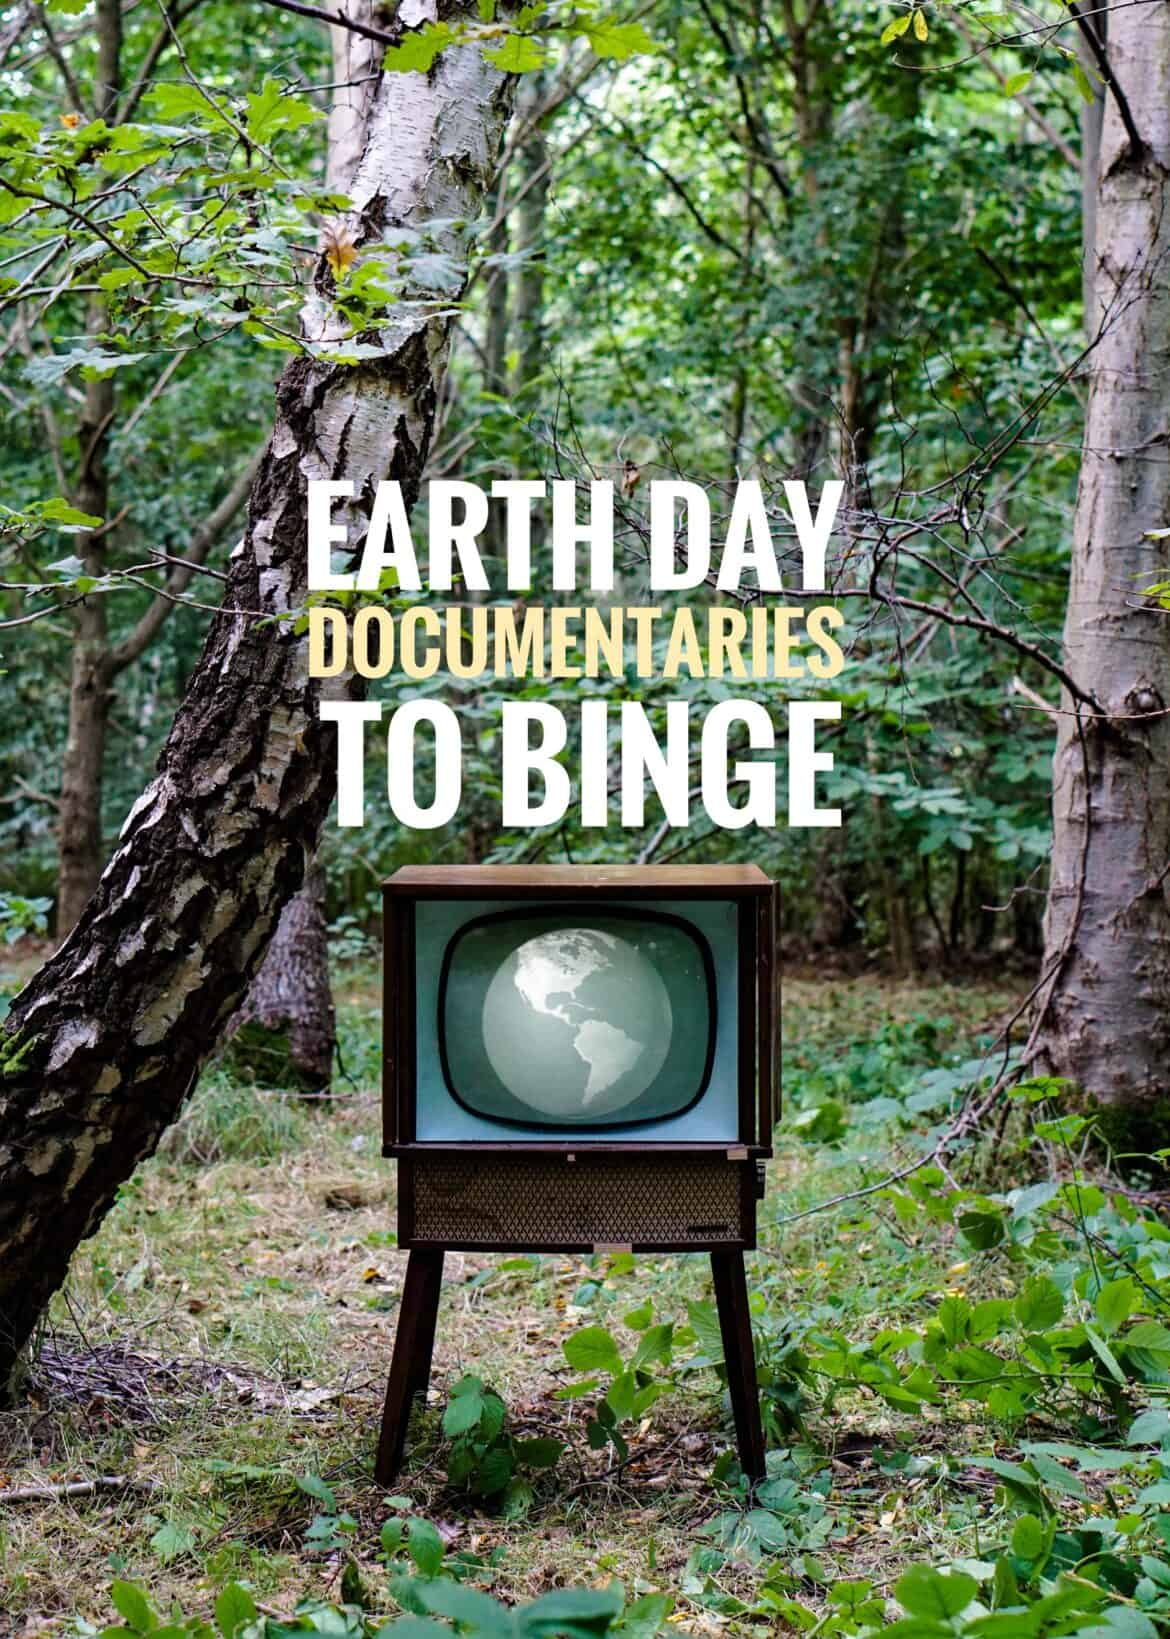 Earth Day documentaries to binge - Photo by Tom Wheatley on Unsplash